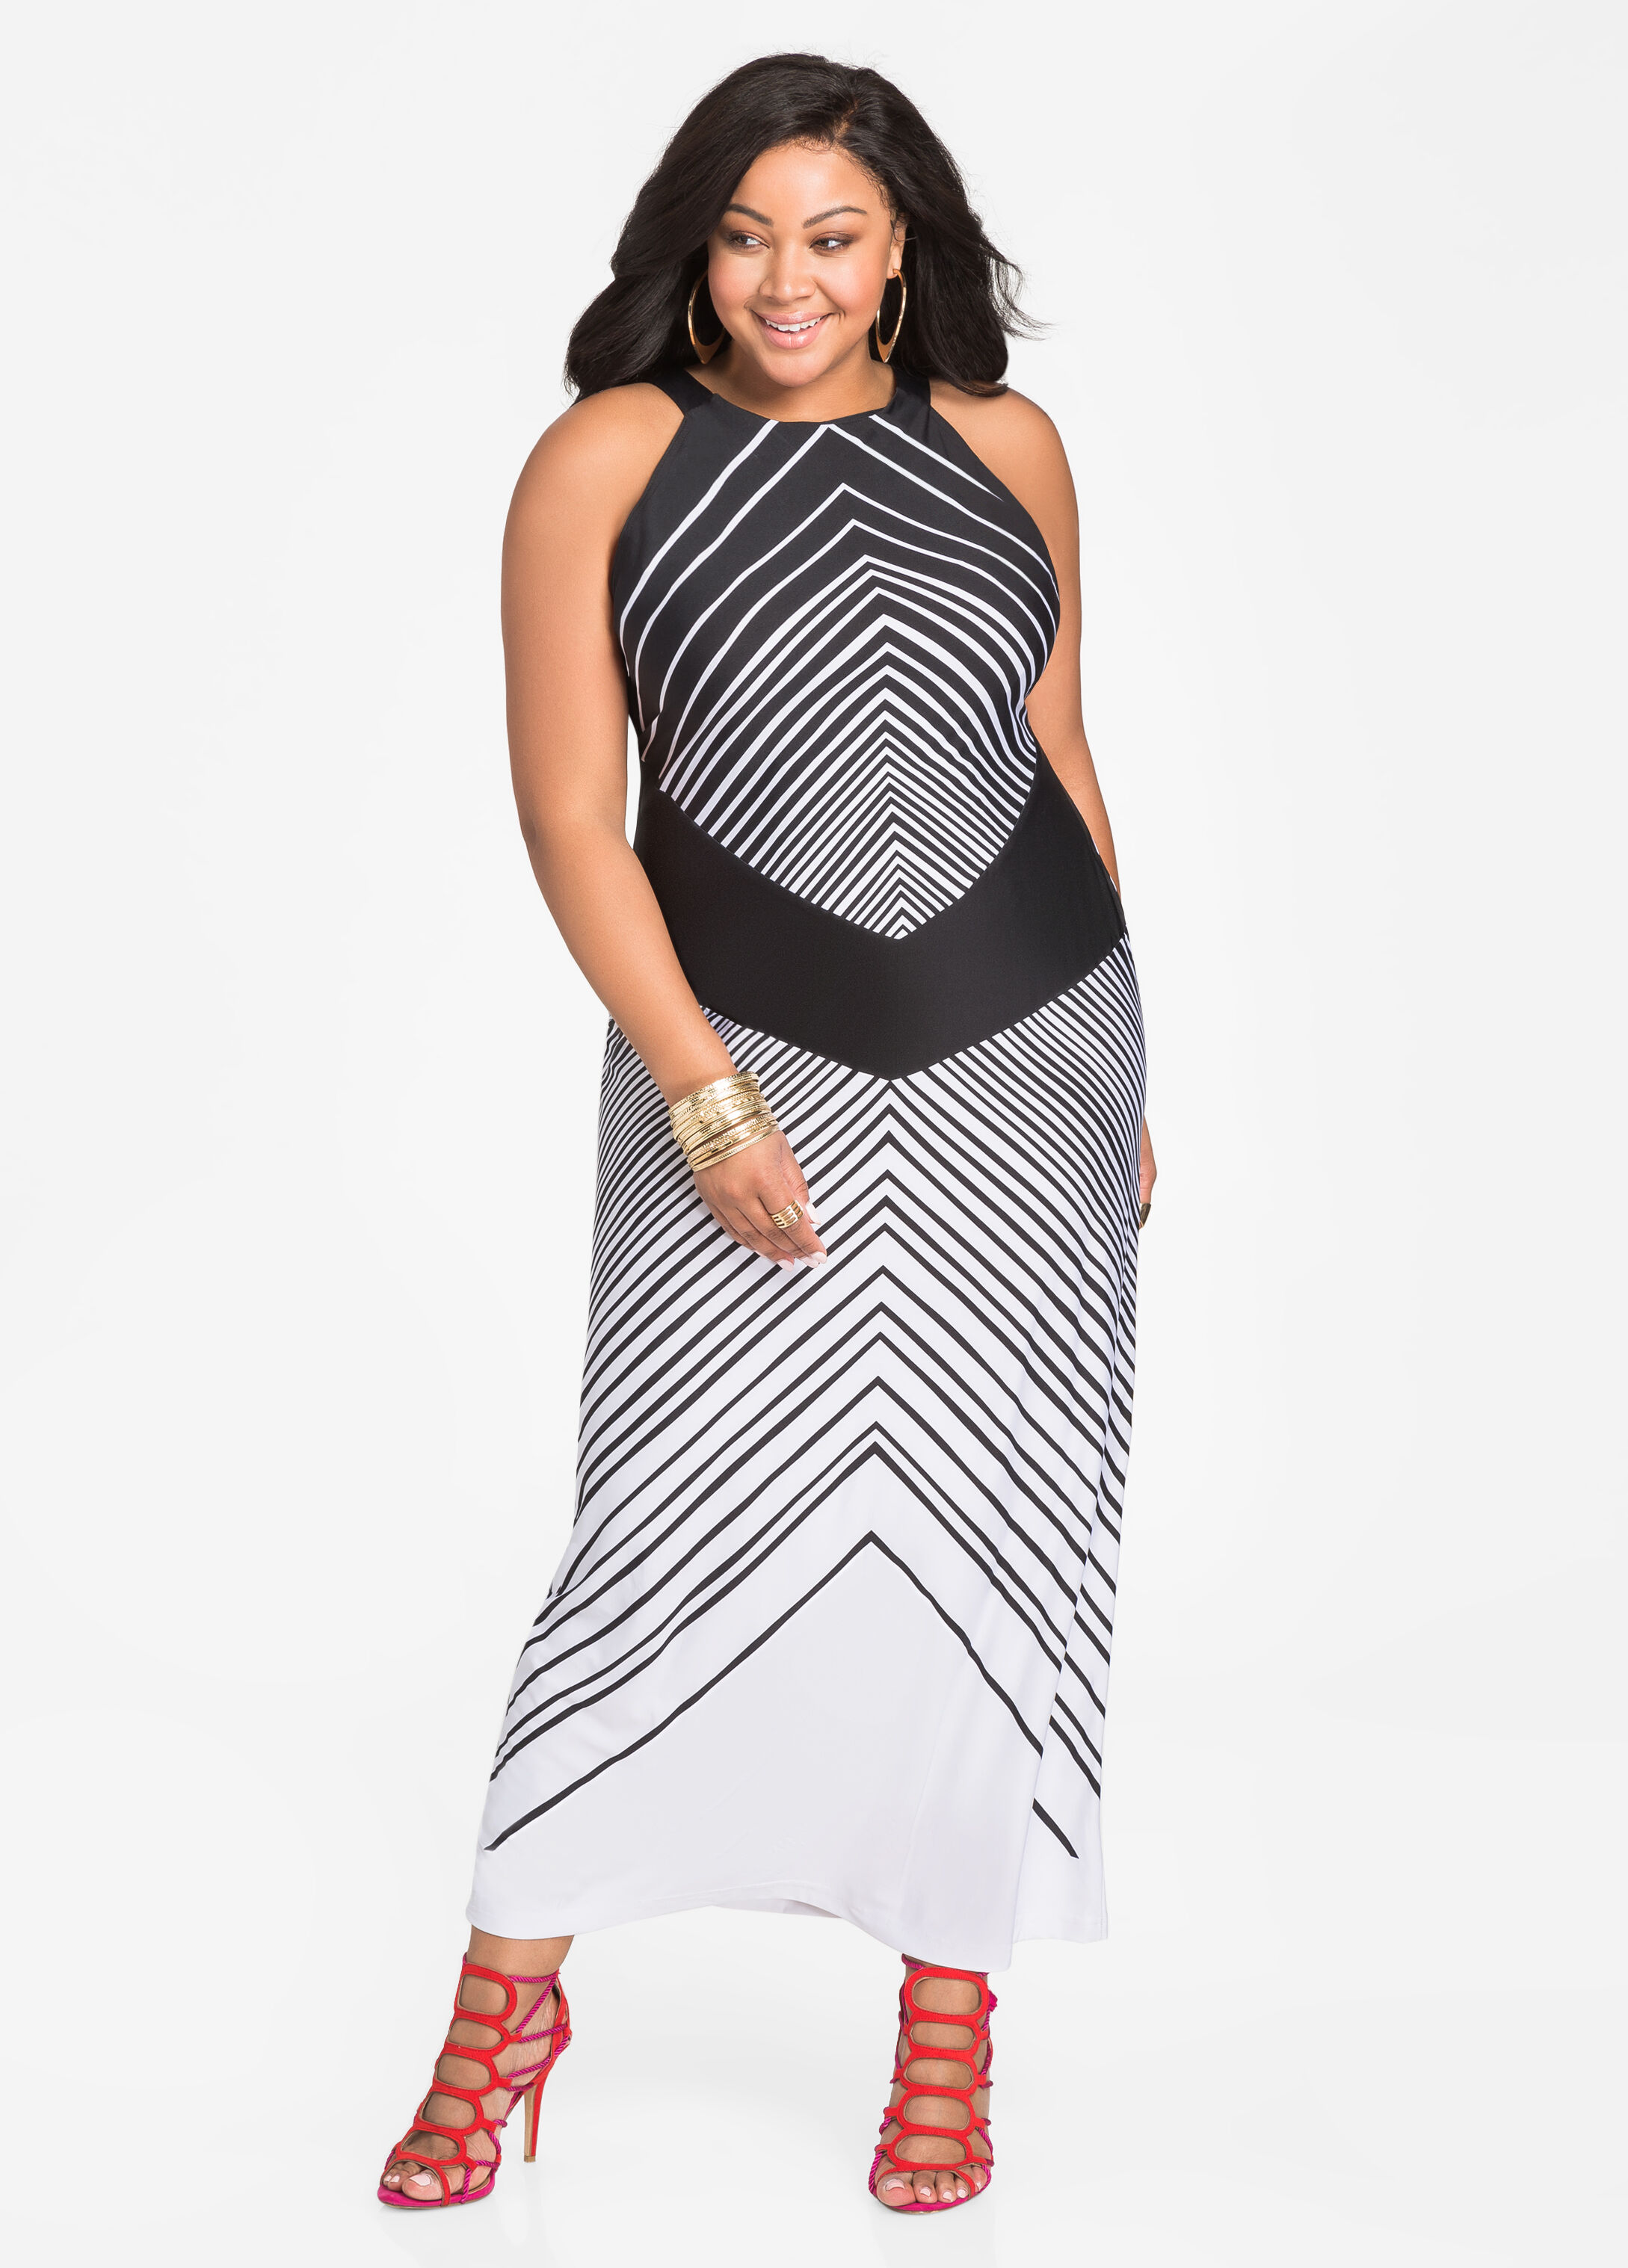 Mixed Media Stripe Halter Dress Black White - Clearance